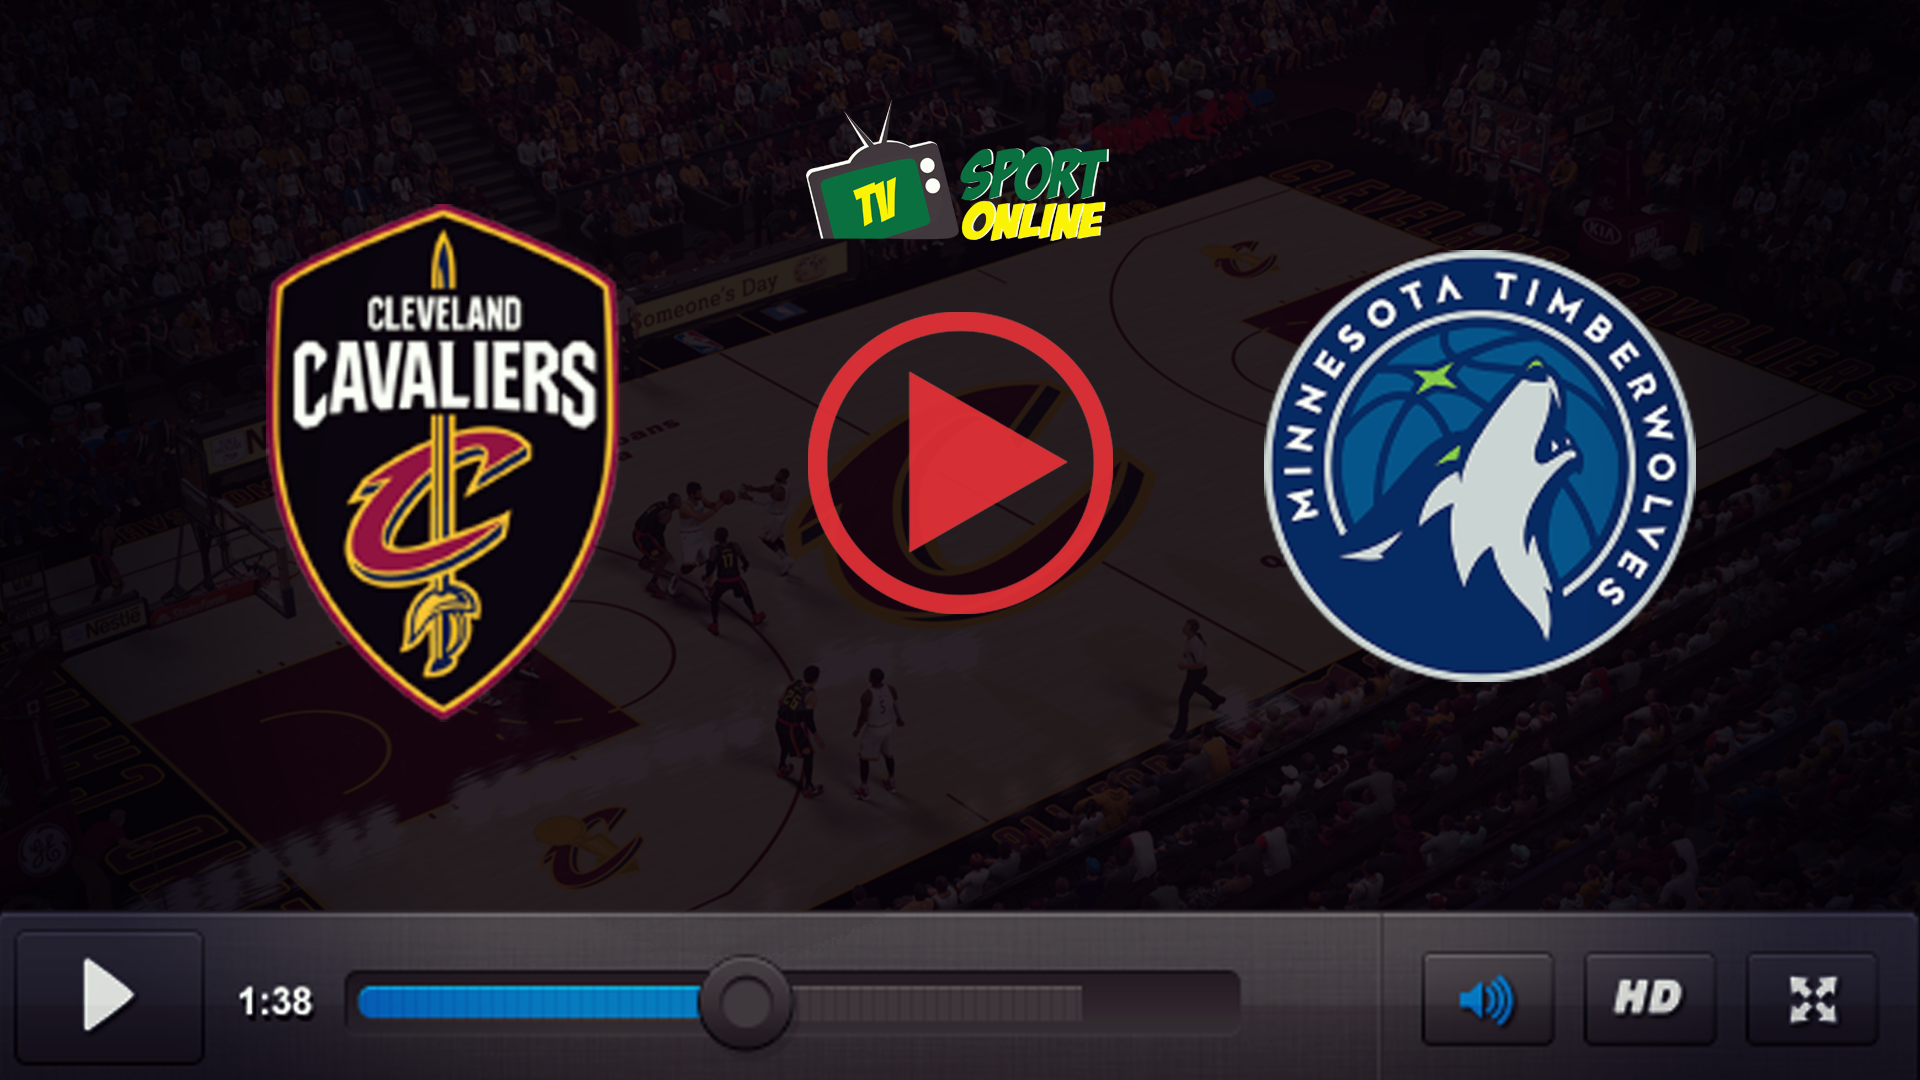 Watch Live Stream Cleveland Cavaliers – Minnesota Timberwolves